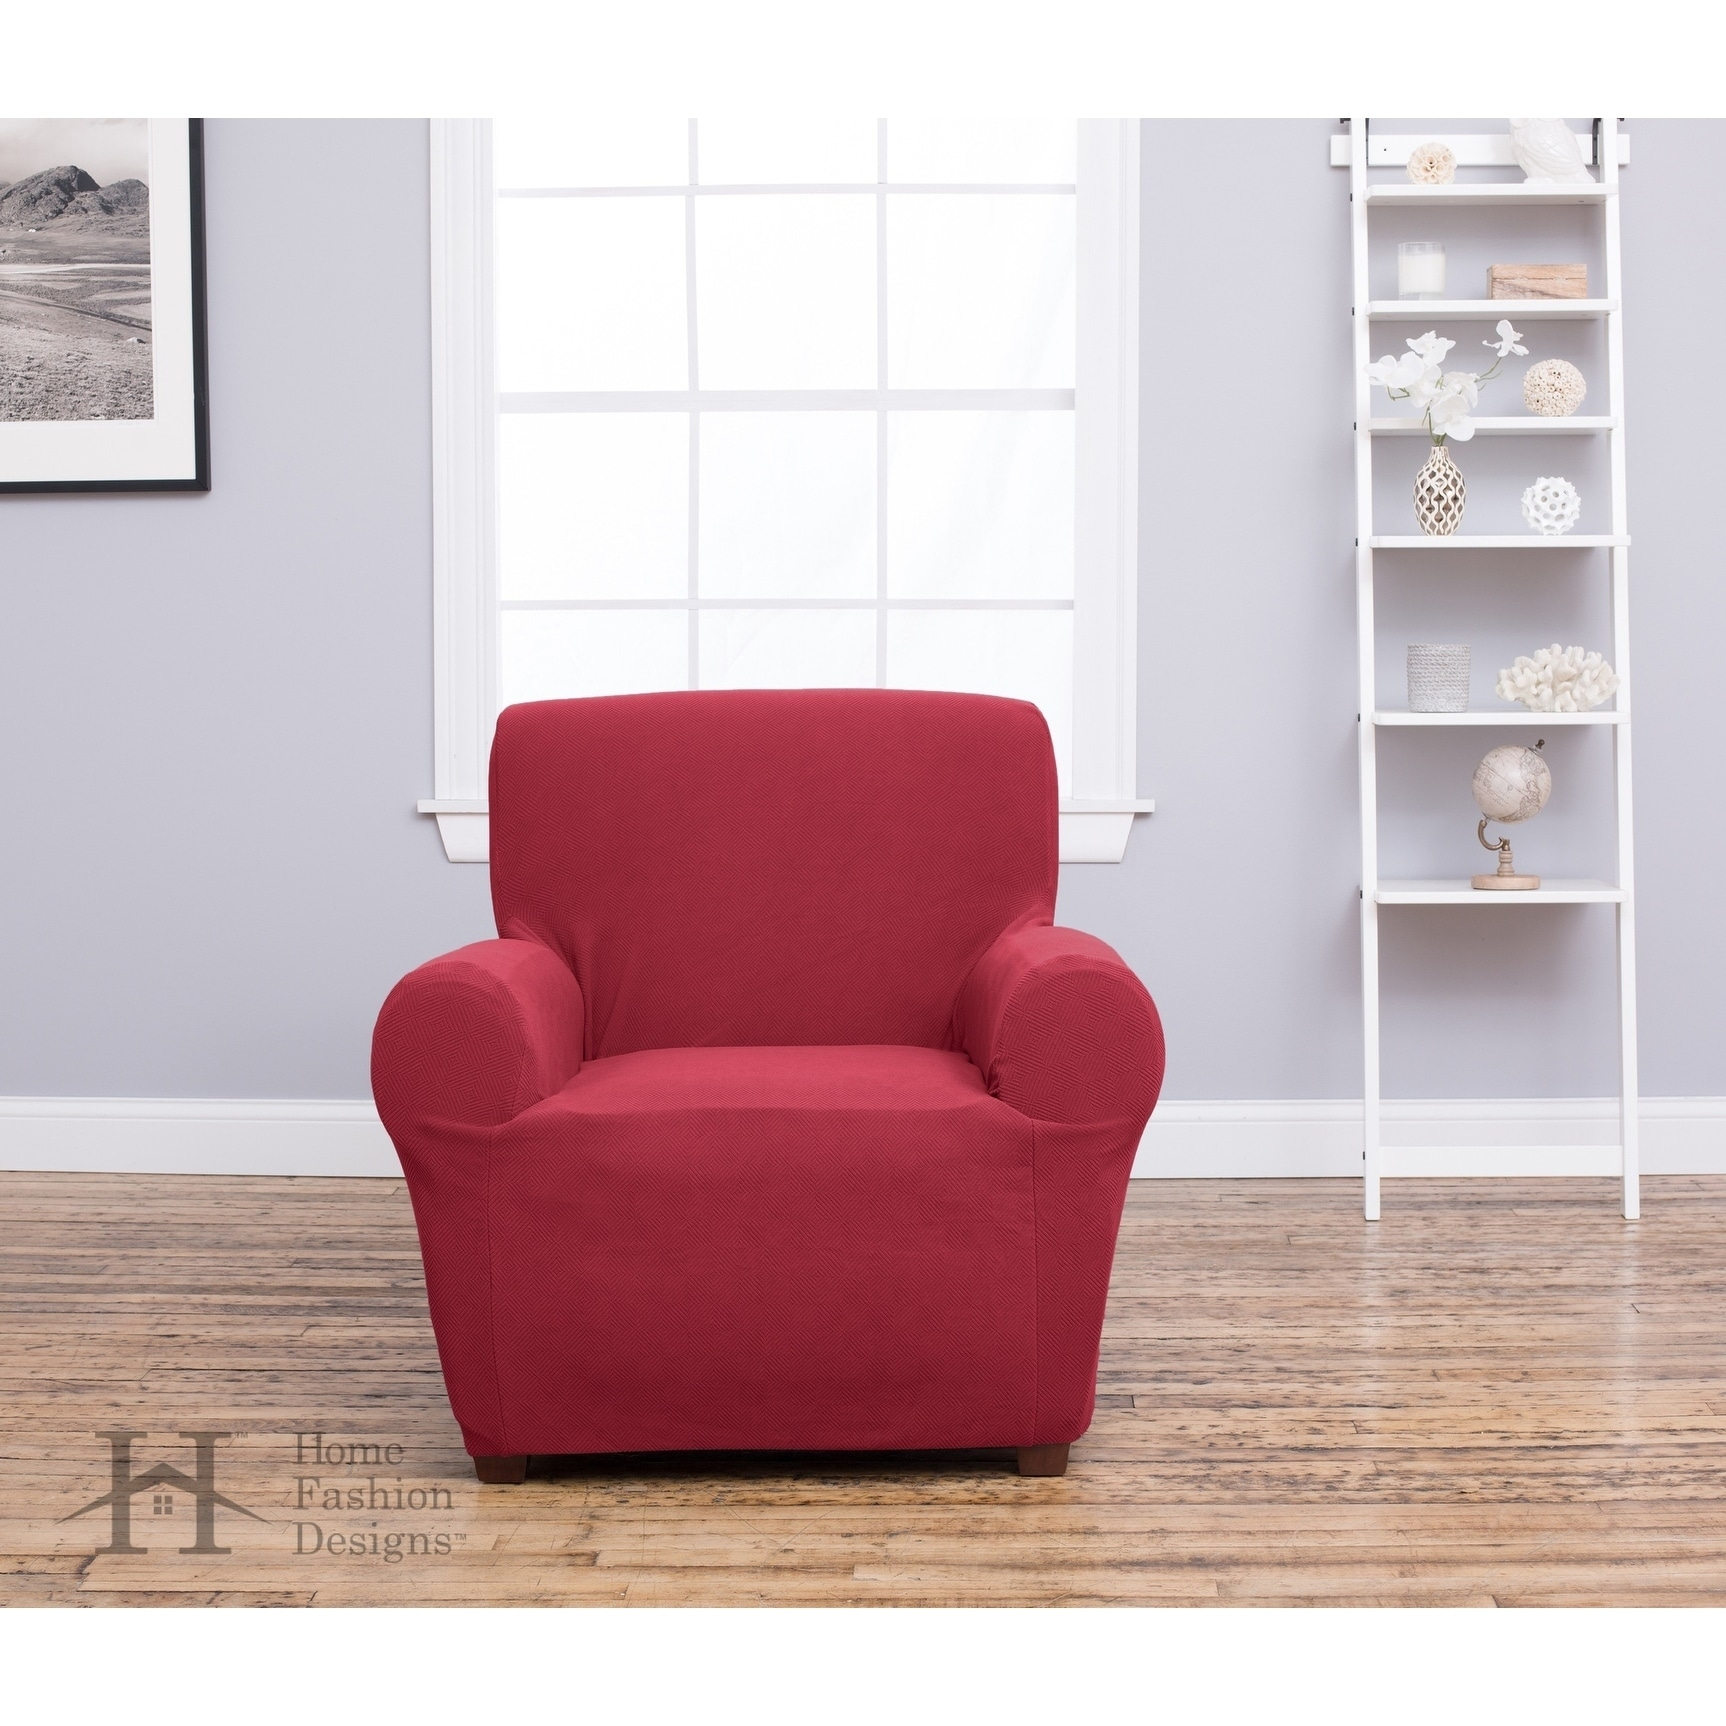 Home Fashion Designs Cambria Collection Heavyweight Stretch Chair Slipcover    Free Shipping On Orders Over $45   Overstock   19069448